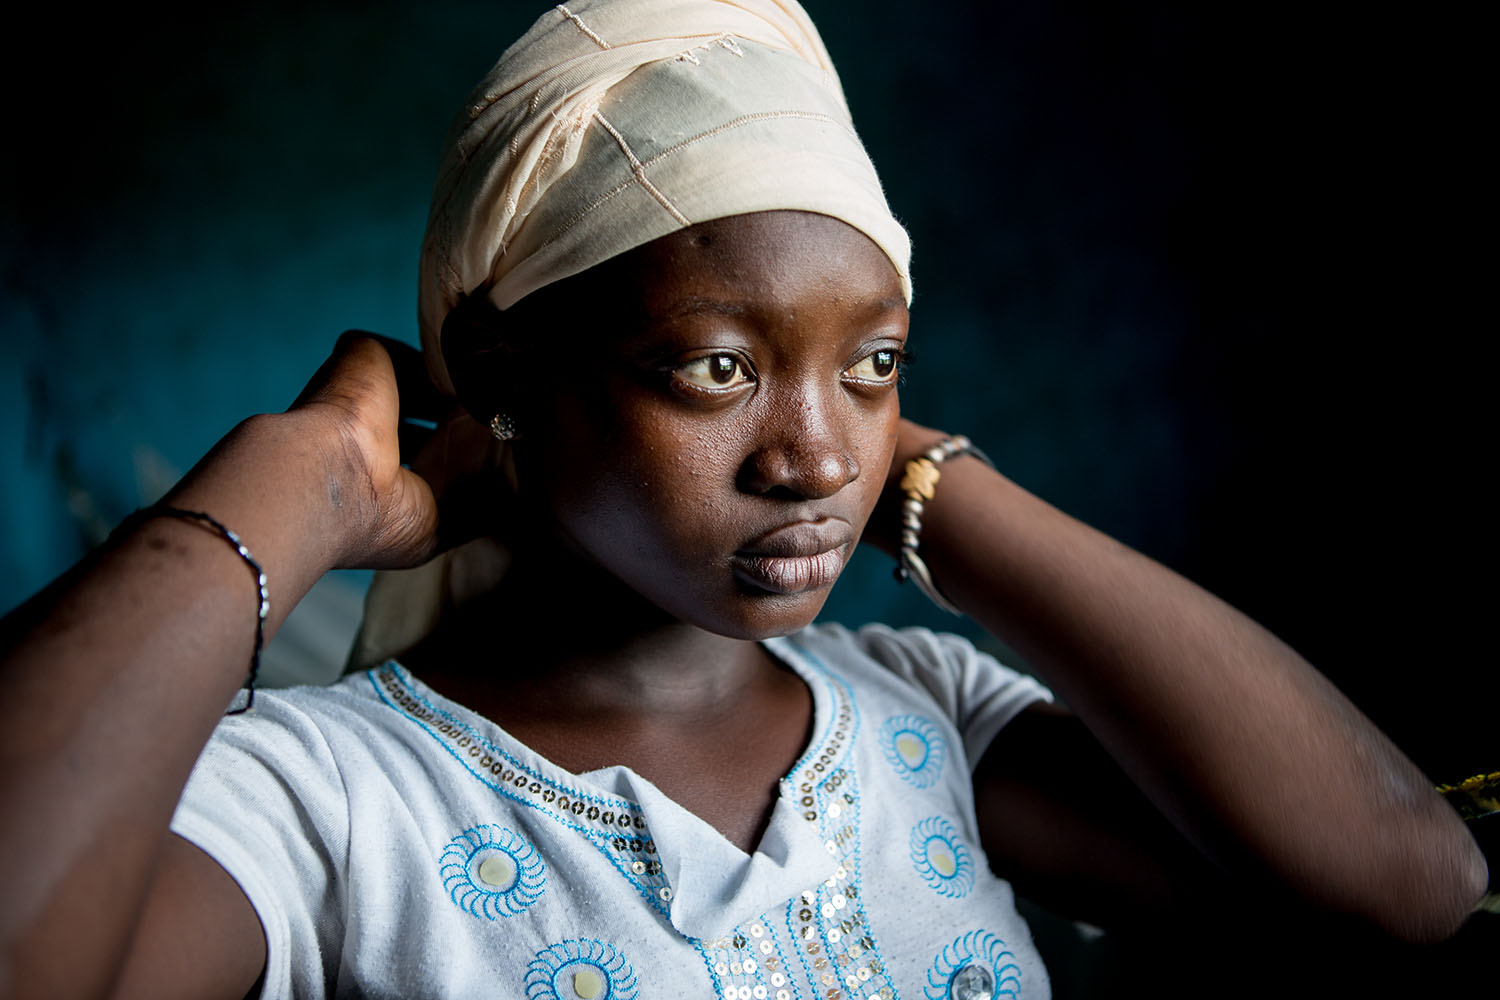 """Abibatou Togola, 15 years old (released) attends Koumantou Secondary School. She is about to complete Grad 8. According to her teacher, she is a courageous student, a """"fighting girl"""". Her grades are good. """"I think she will be able to pursue her drea"""